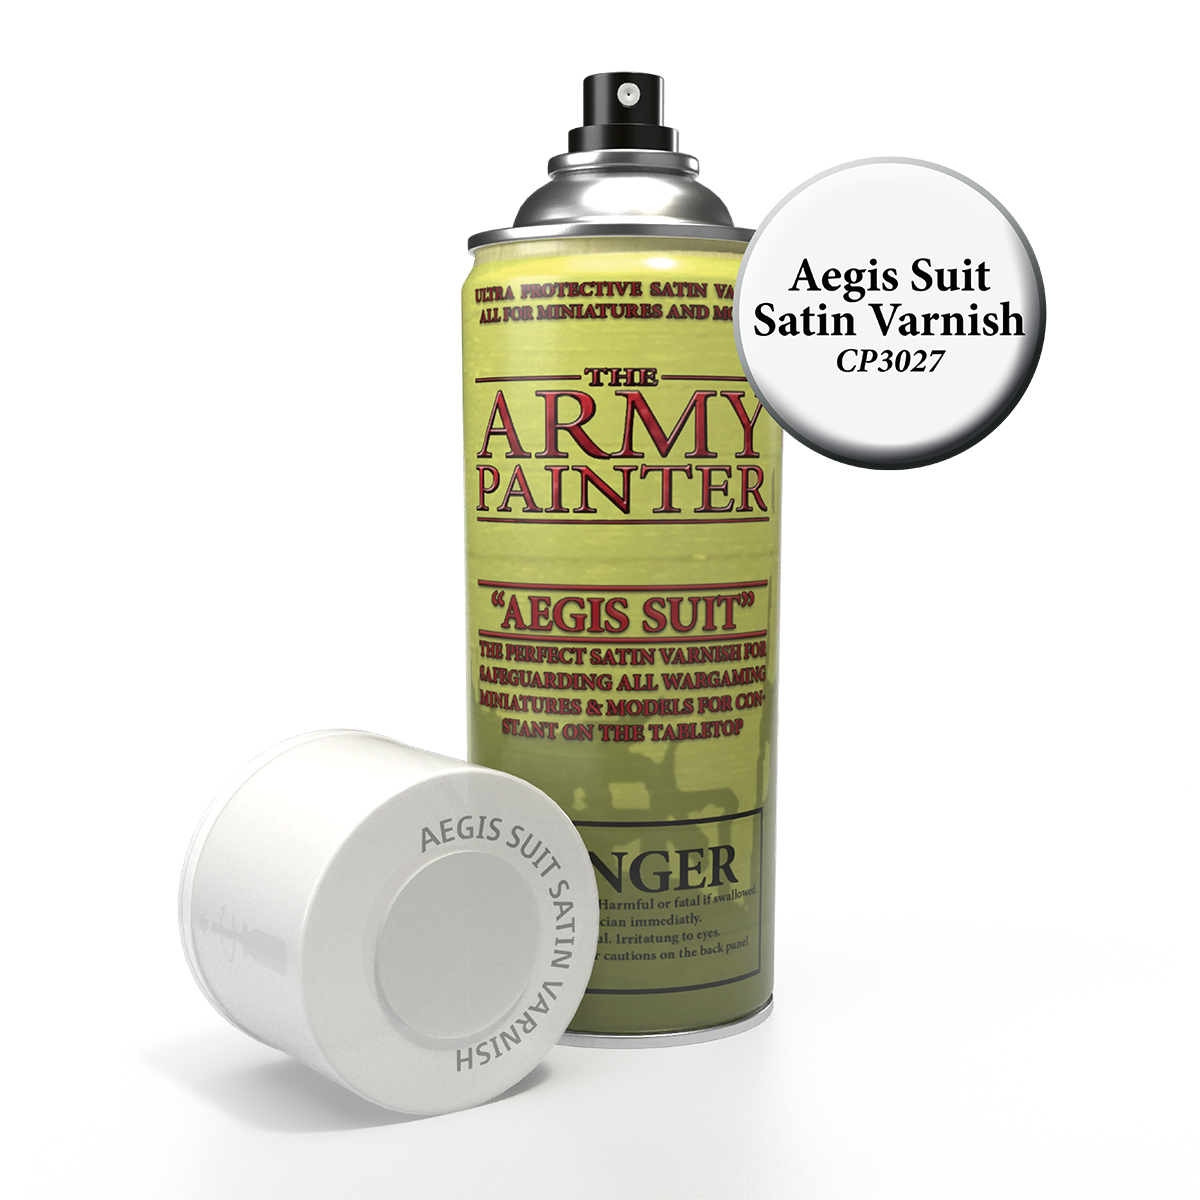 Army Painter Base Primer - Aegis Suit, Satin Varnish